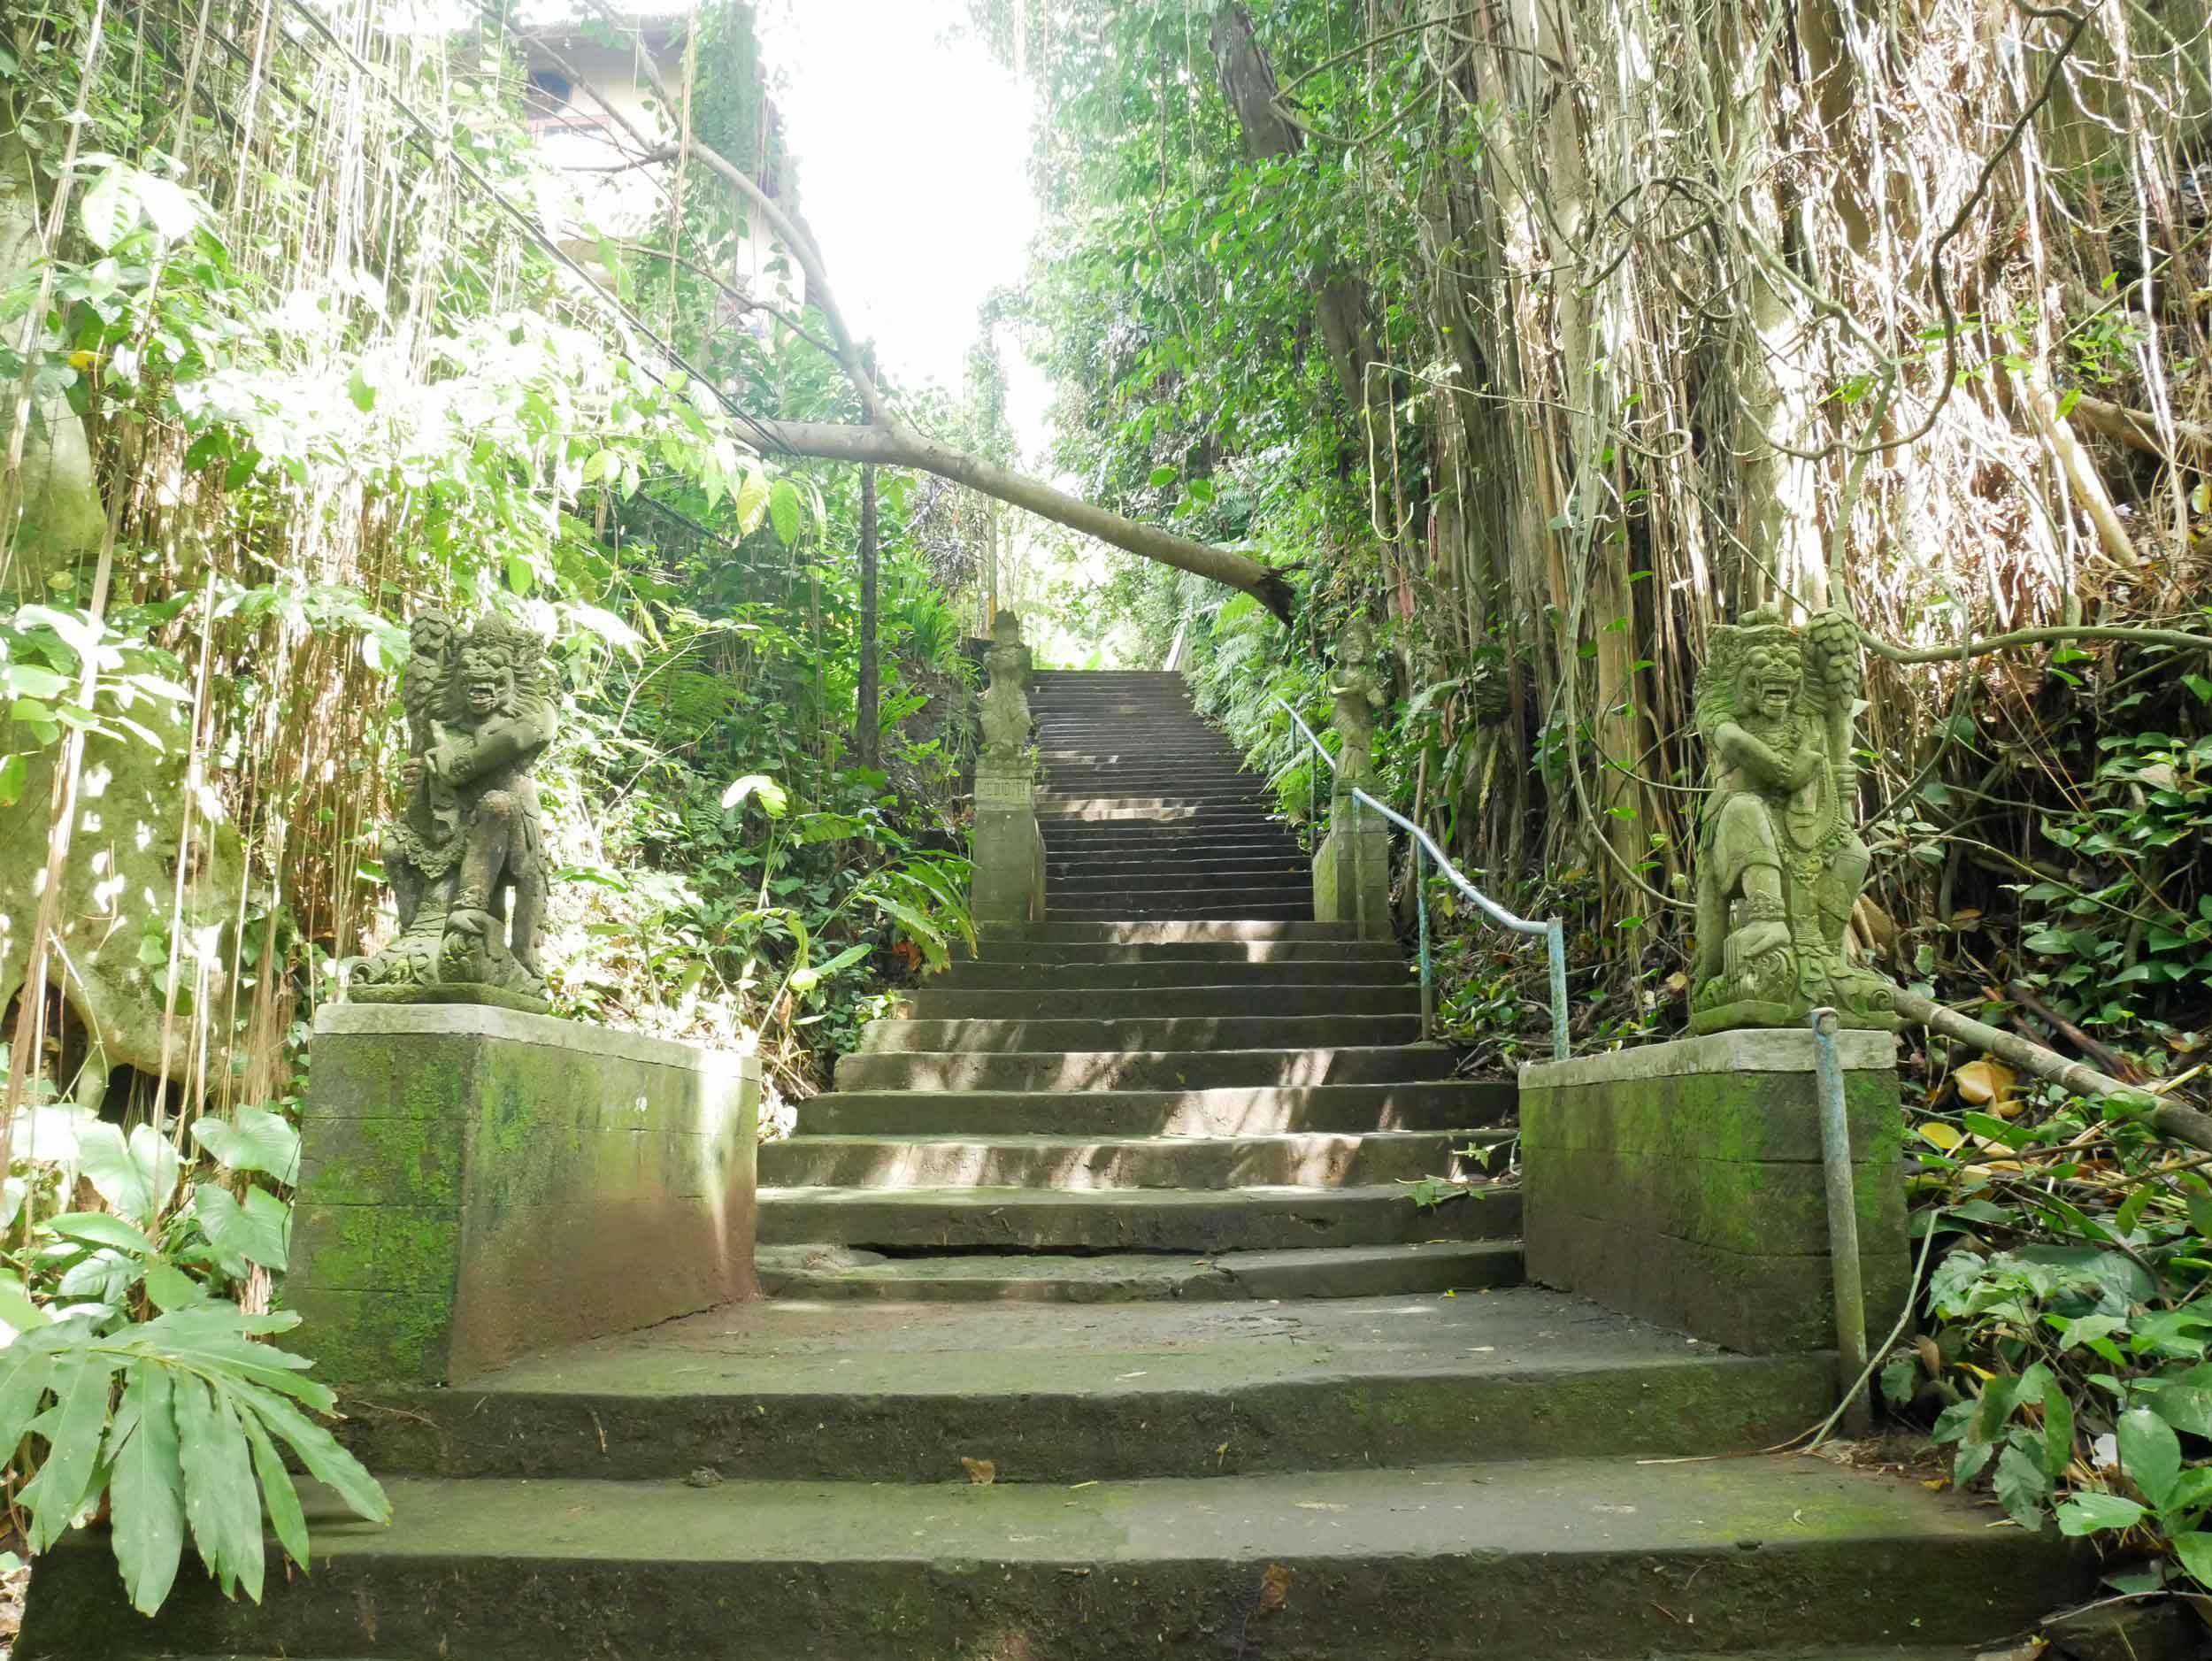 In the heart of the island, green was everywhere, even covering the stairs we took to reach morning yoga.